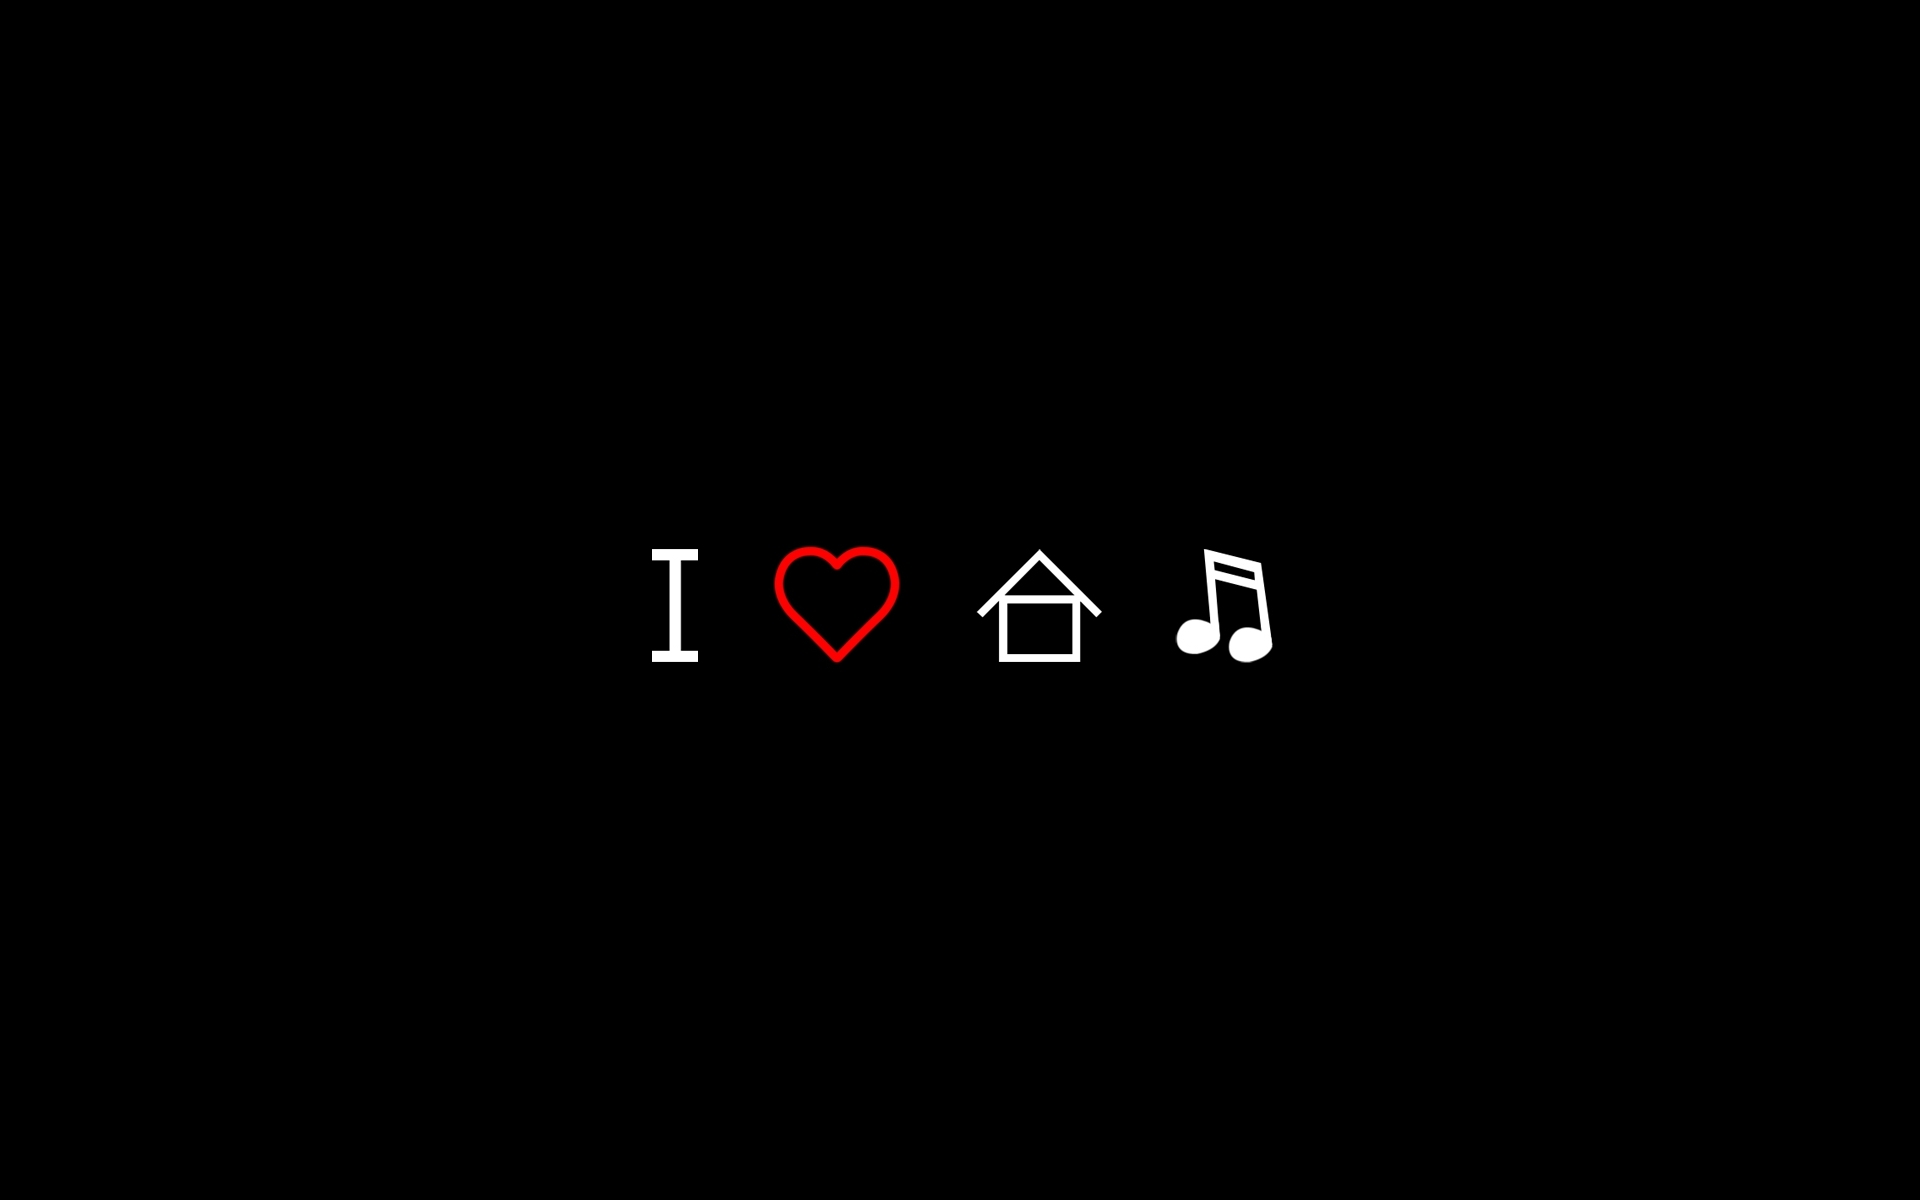 I love house music wallpaper high definition high for Define house music